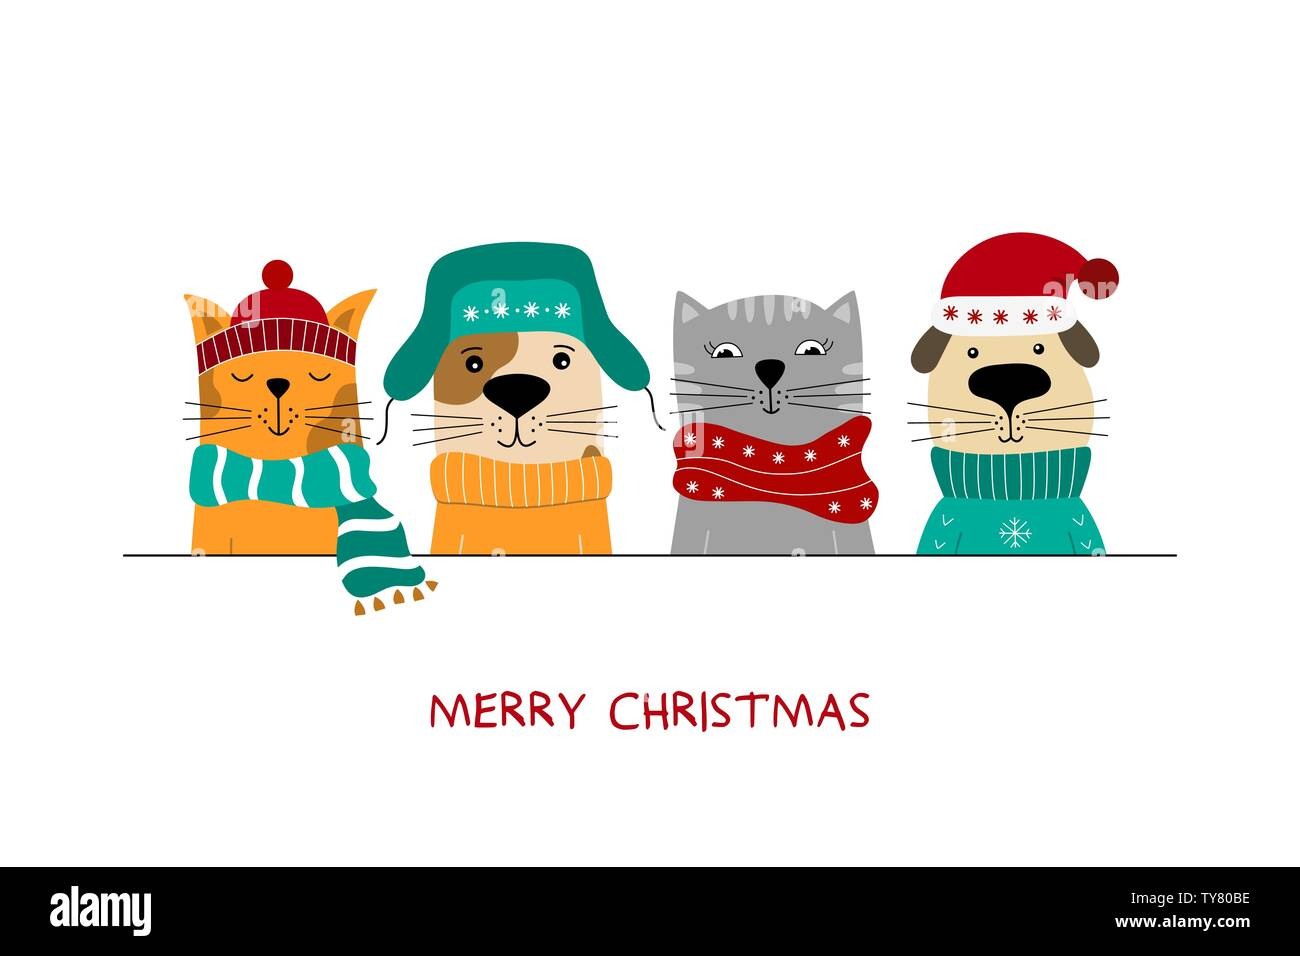 Merry Christmas Illustration Of Cute Cats And Funny Dogs Stock Vector Image Art Alamy